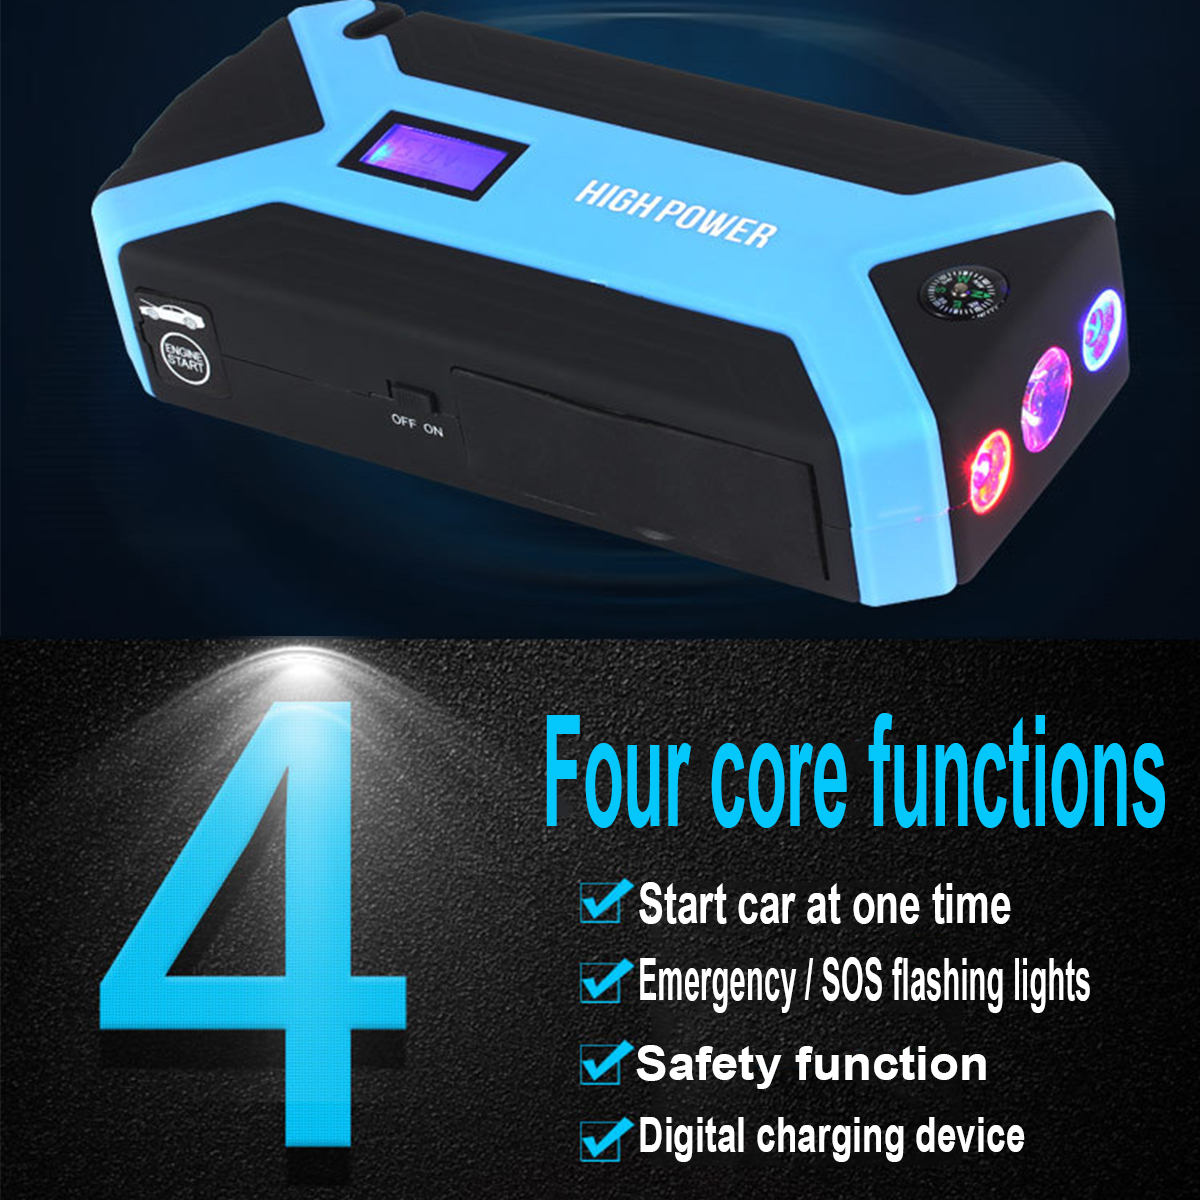 Portable 69800mAh 12V 4USB Car Jump Starter Device Booster Charger Battery Power Bank LED Flashlight For Car Battery Charger car jump starter emergency 69800mah 12v starting device 4usb sos light mobile power bank car charger for car battery booster led